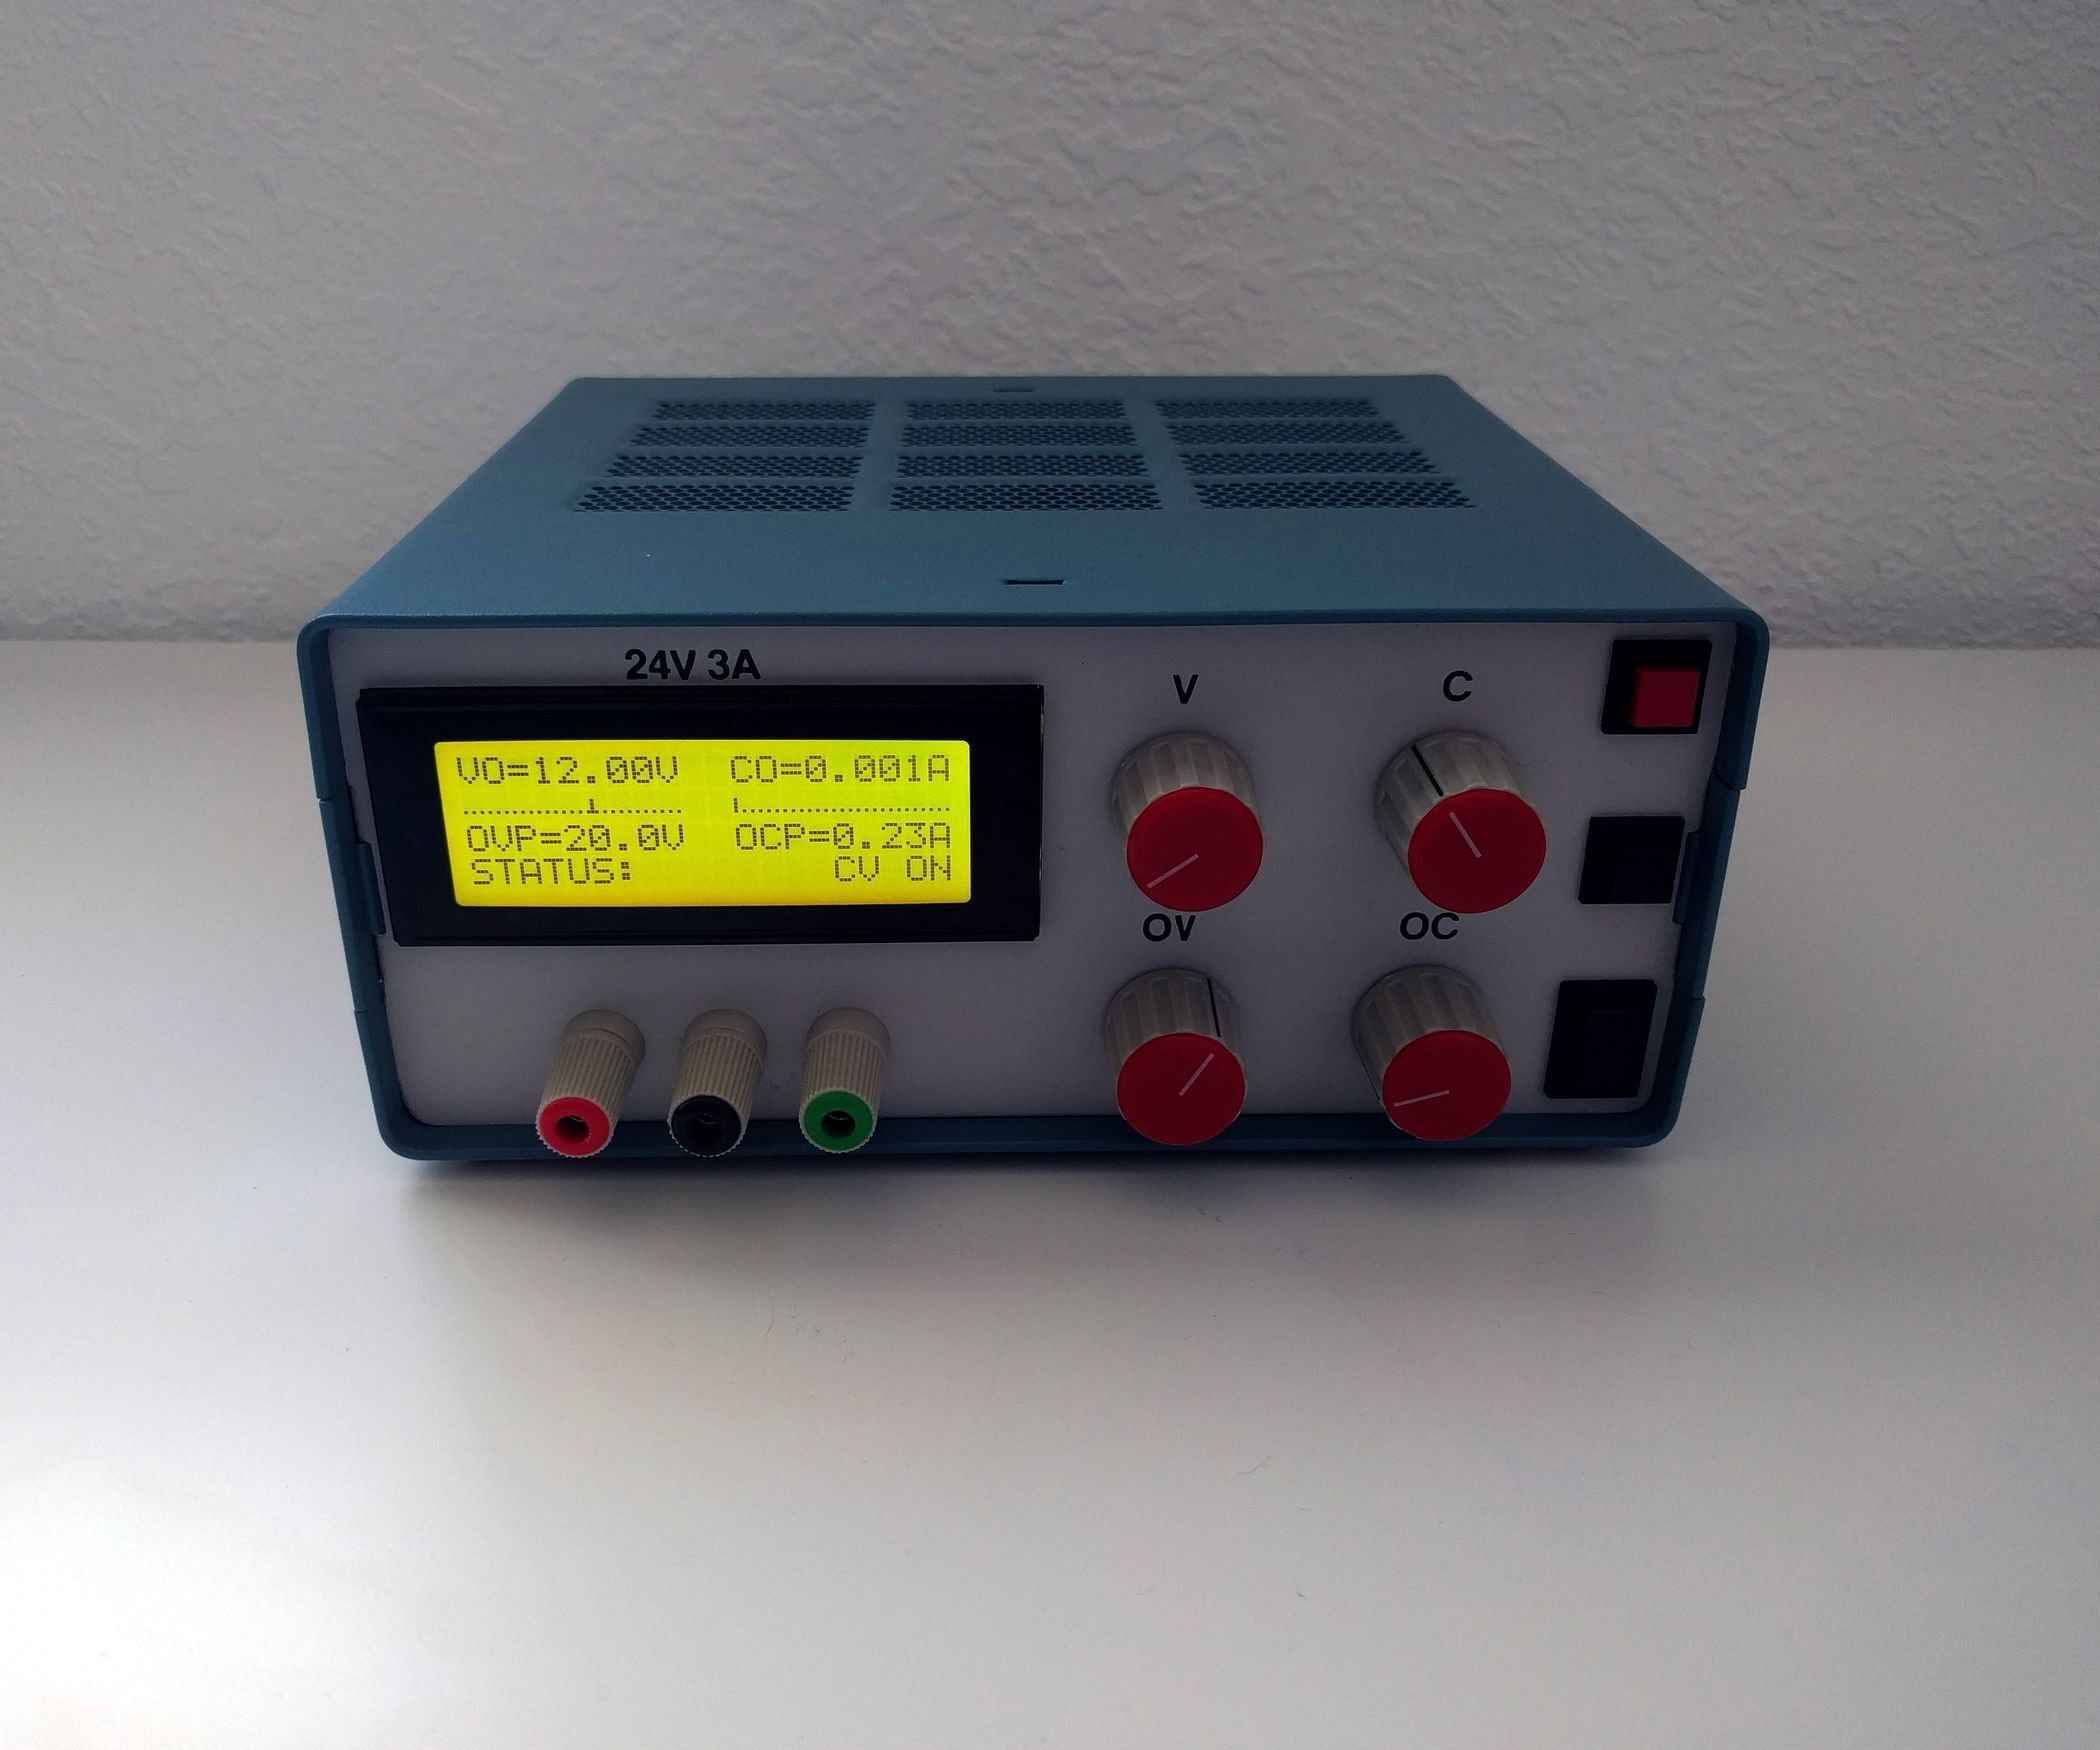 Superb Lab Power Supply Electronics Pinterest Diy 30 Watt Stereo Amplifier Circuit Gadgetronicx From My Point Of View One The Best Ways To Get Started In Is Build Your Own Laboratory This Instructable I Have Tried